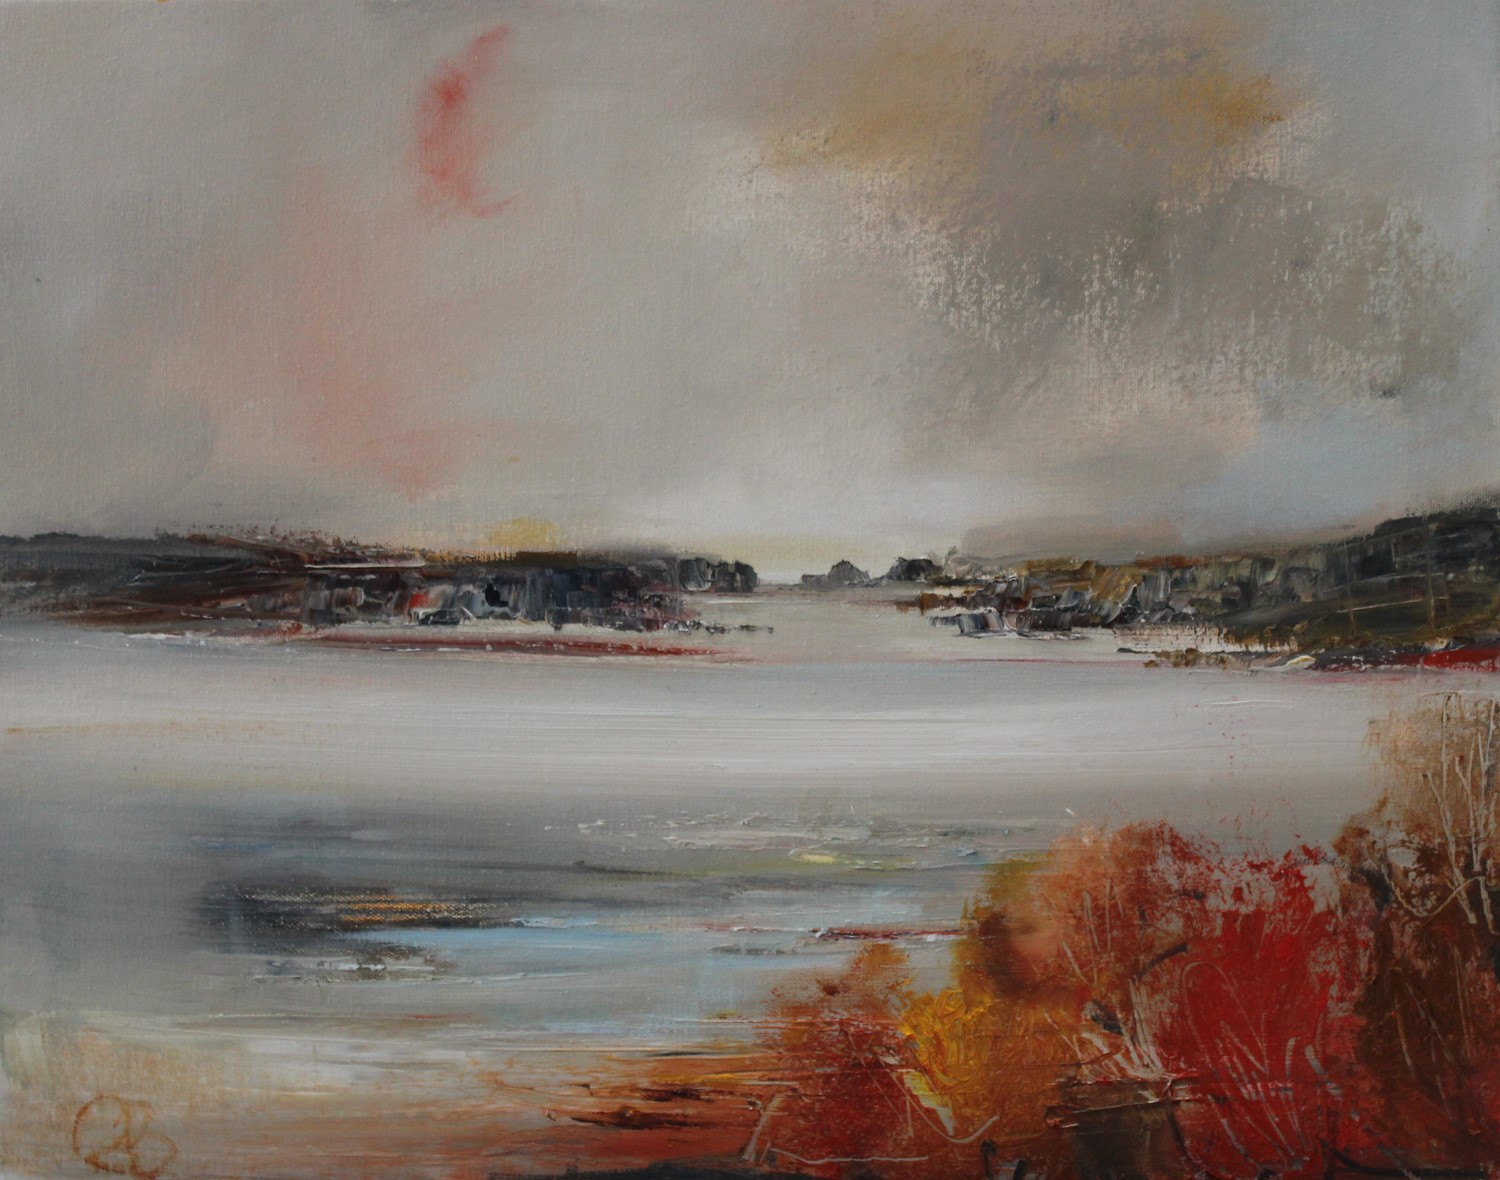 'With An Autumnal Feel' by artist Rosanne Barr